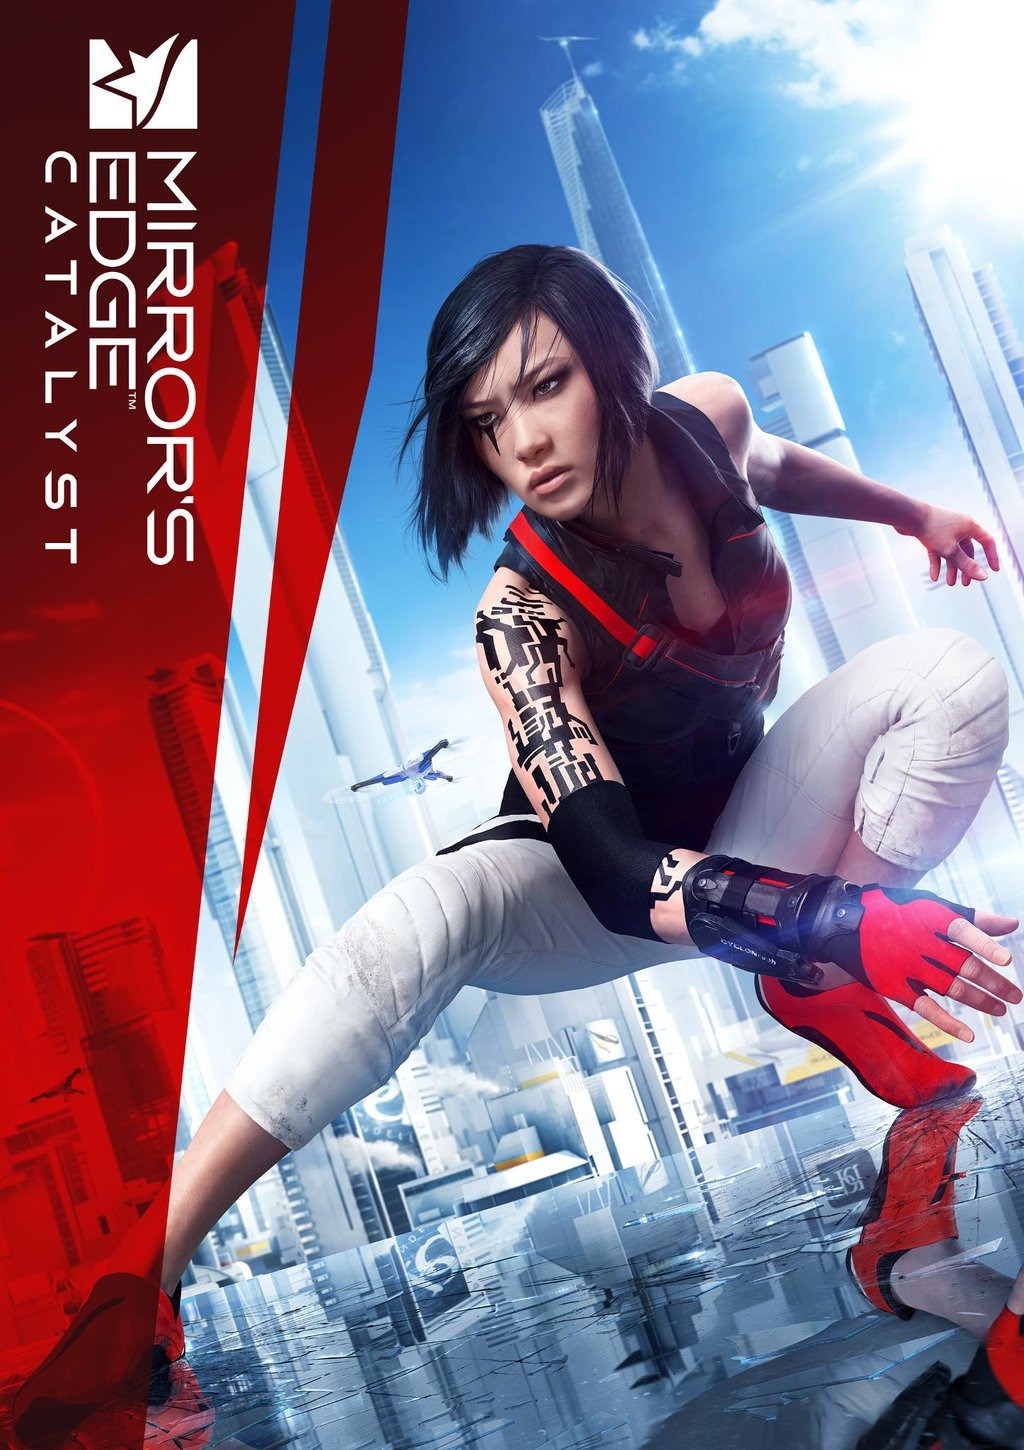 Mirrors_Edge_MirrorsEdgeartwork半拍同学采集到壁纸丶